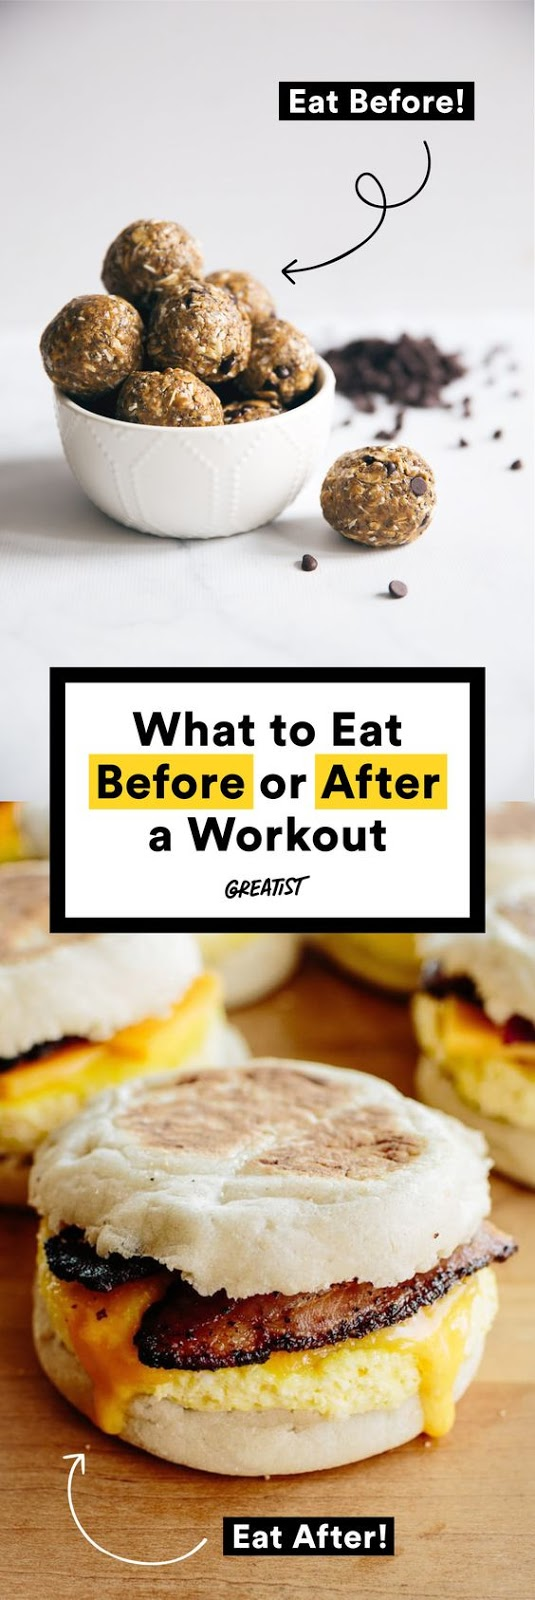 What to Eat Before a Workout: 50 Pre- and Post-Workout Snacks